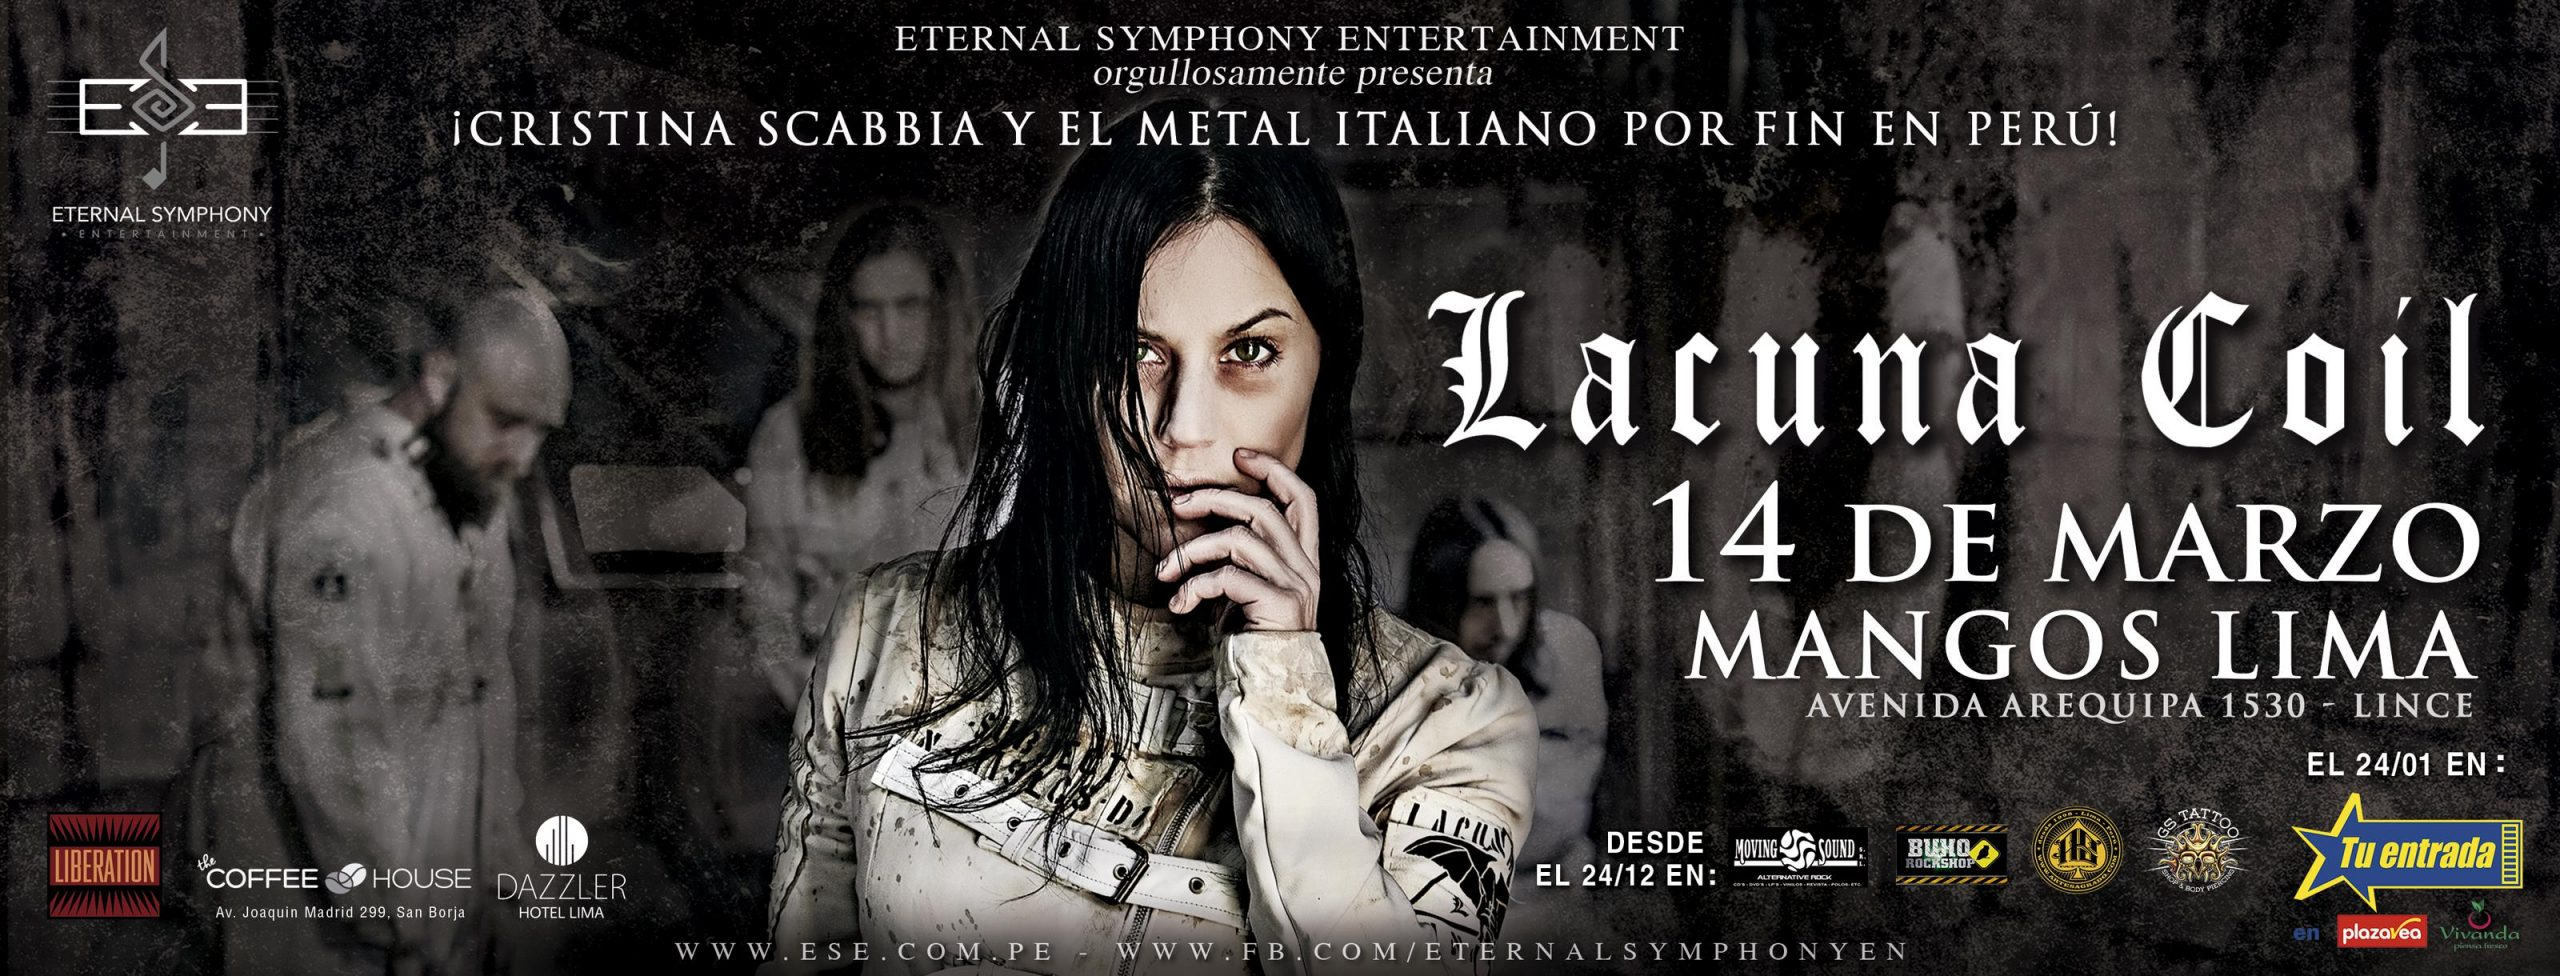 Lacuna Coil en Lima scaled